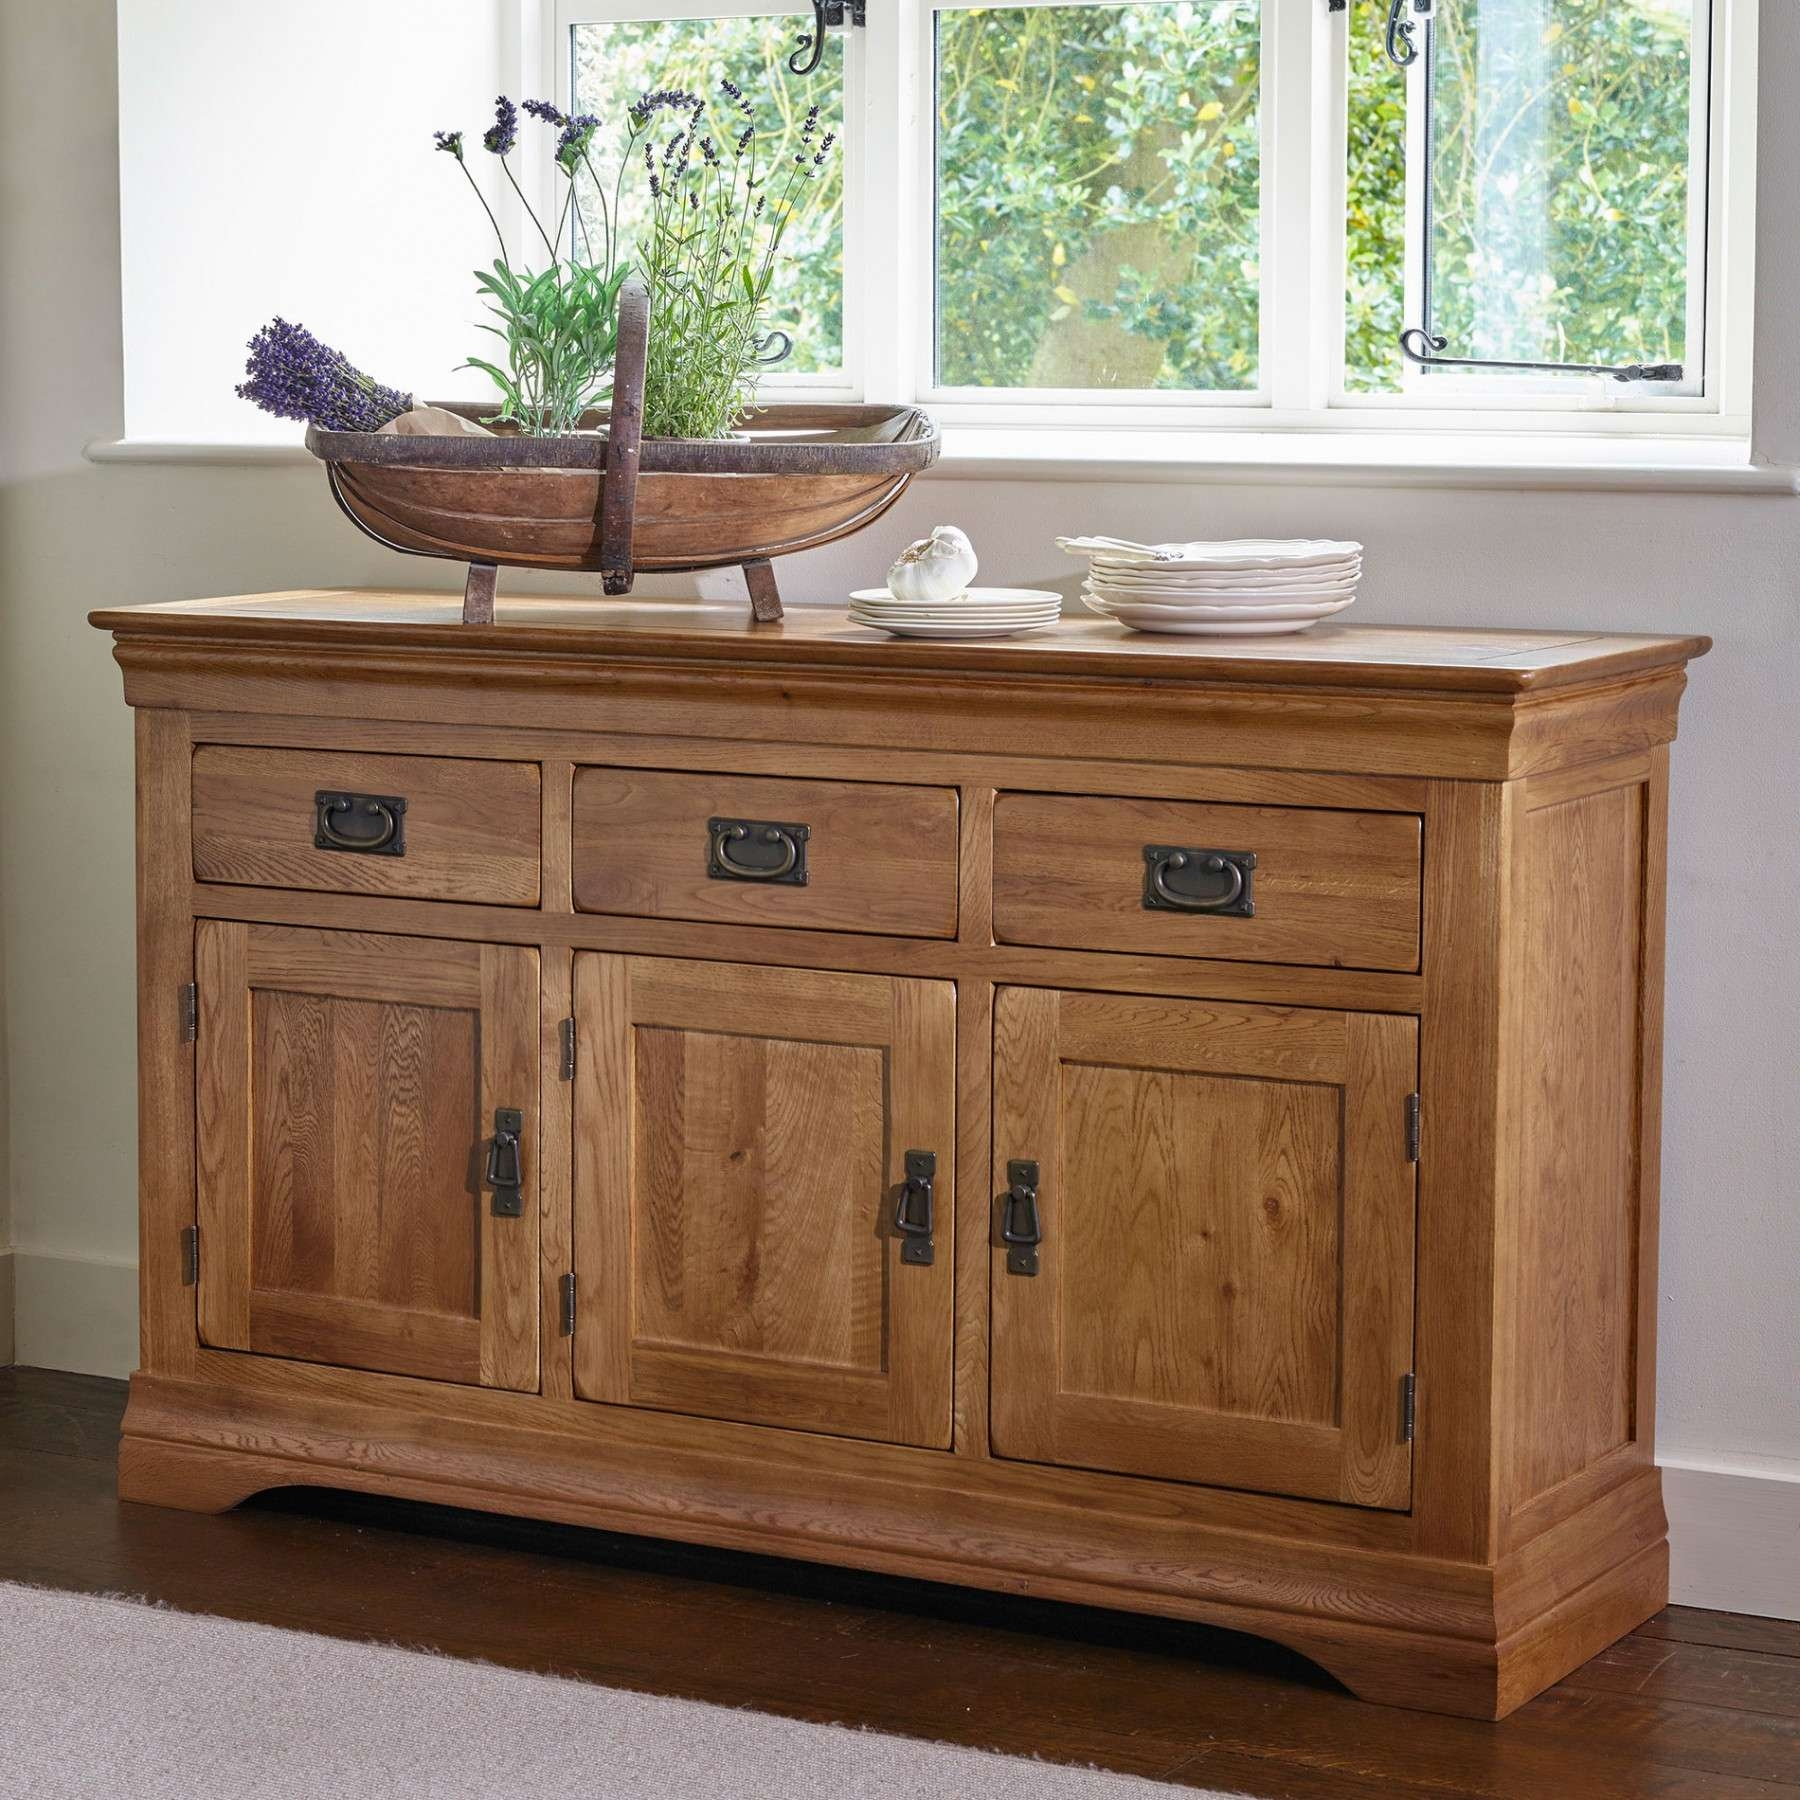 French Farmhouse Rustic Solid Oak Large Sideboard | Sideboards With Regard To Rustic Oak Large Sideboards (View 7 of 20)